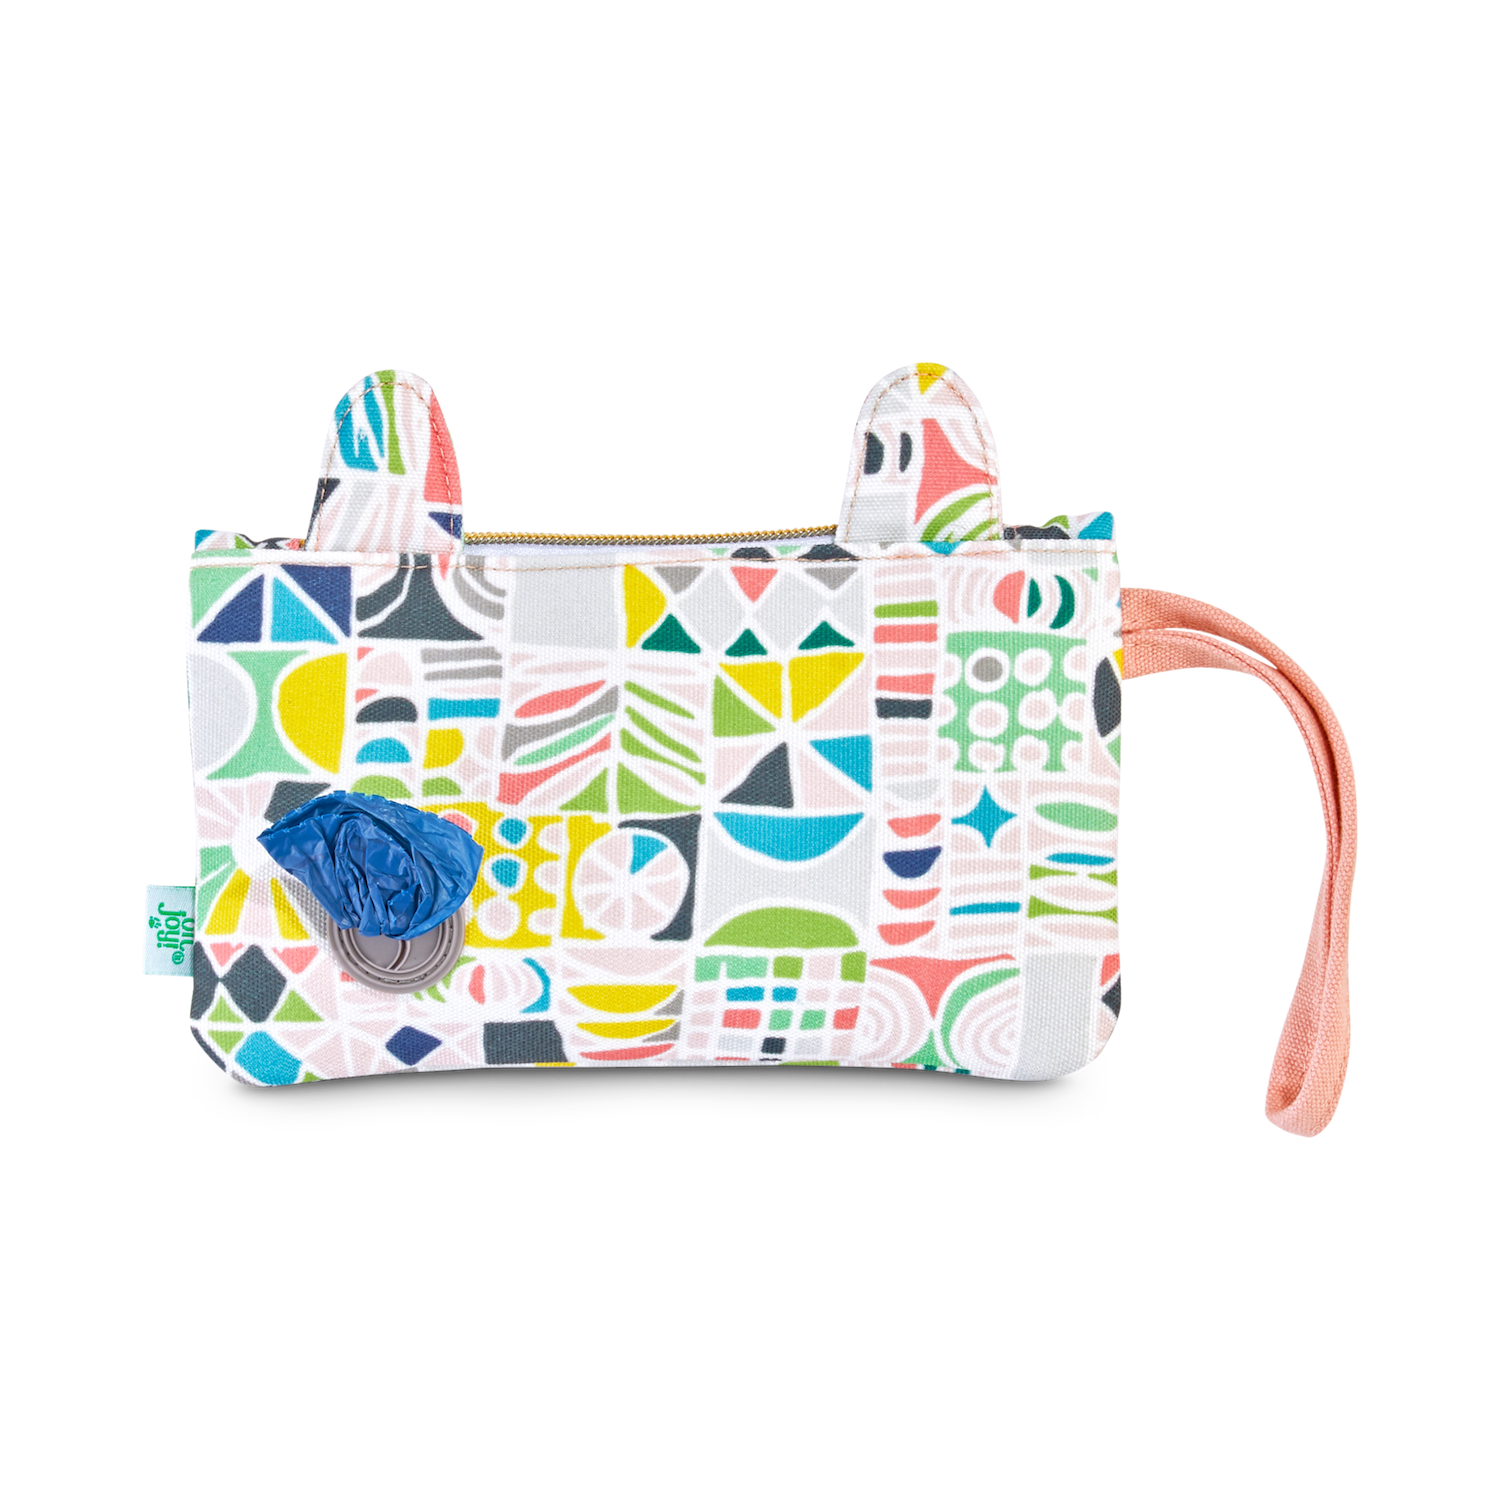 Wristlet with compartments for dog walking